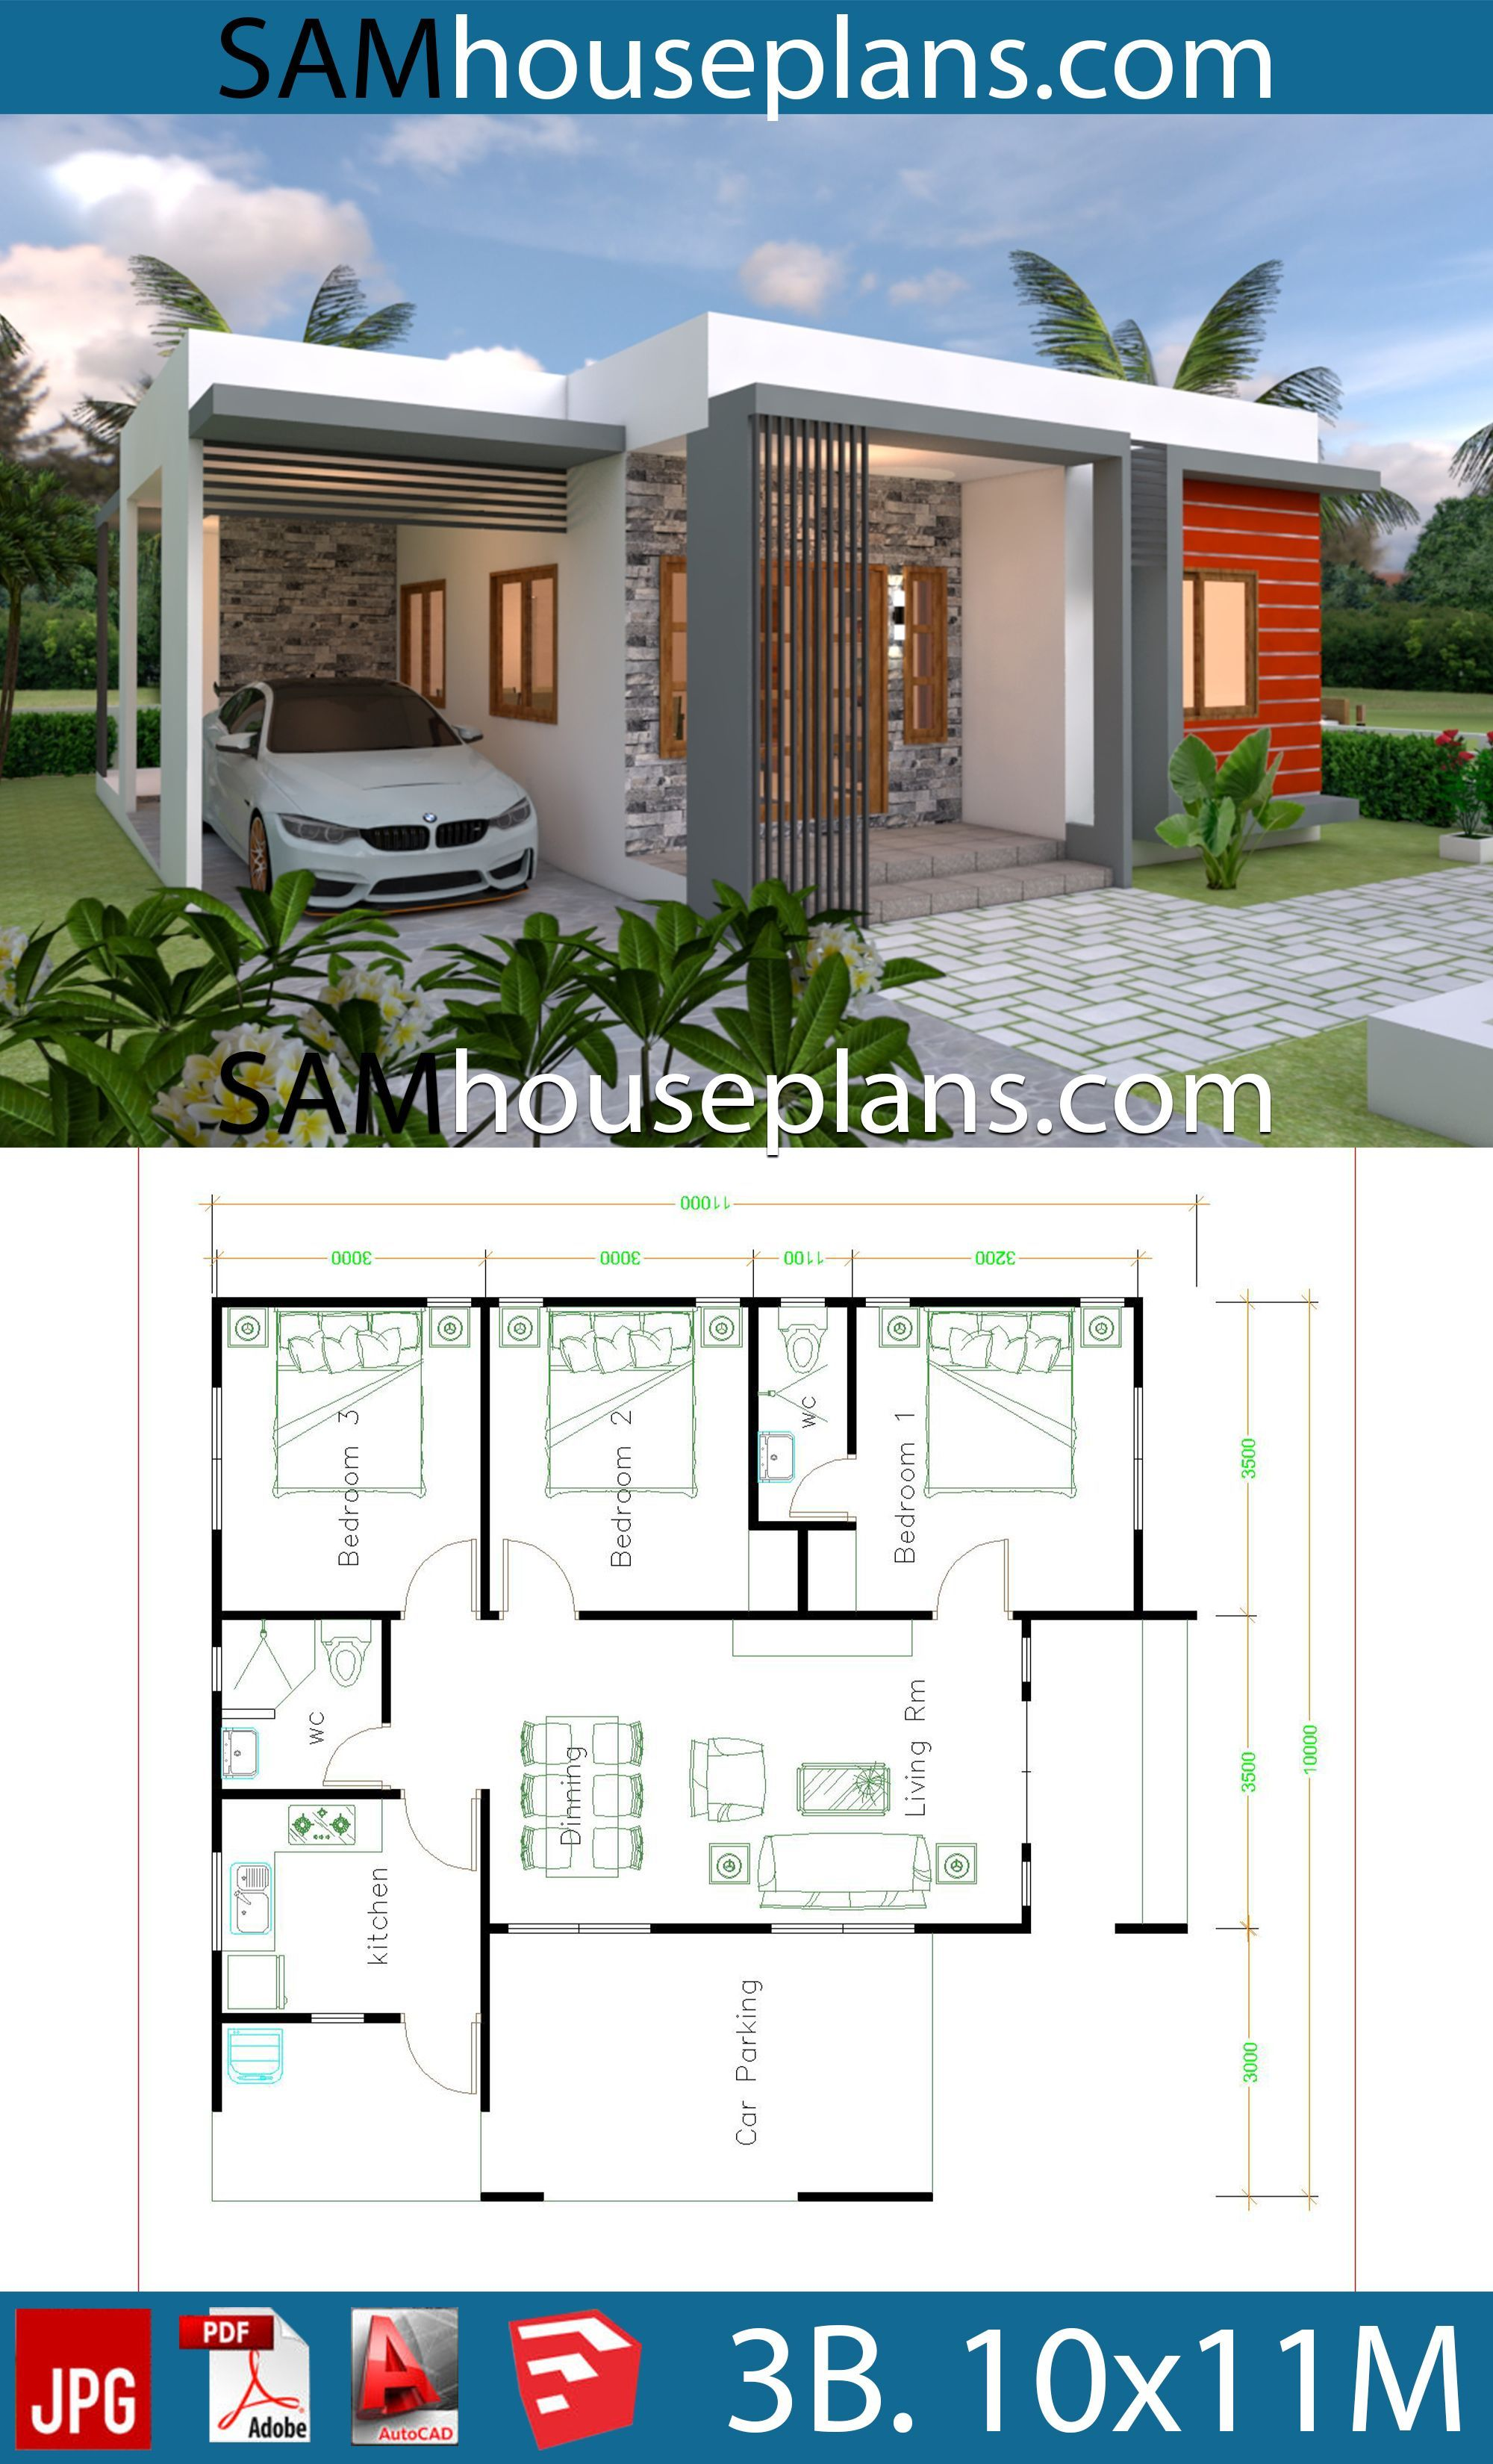 House Plans 10x11 With 3 Bedrooms House Plans Free Downloads Beautiful House Plans Modern Bungalow House Model House Plan